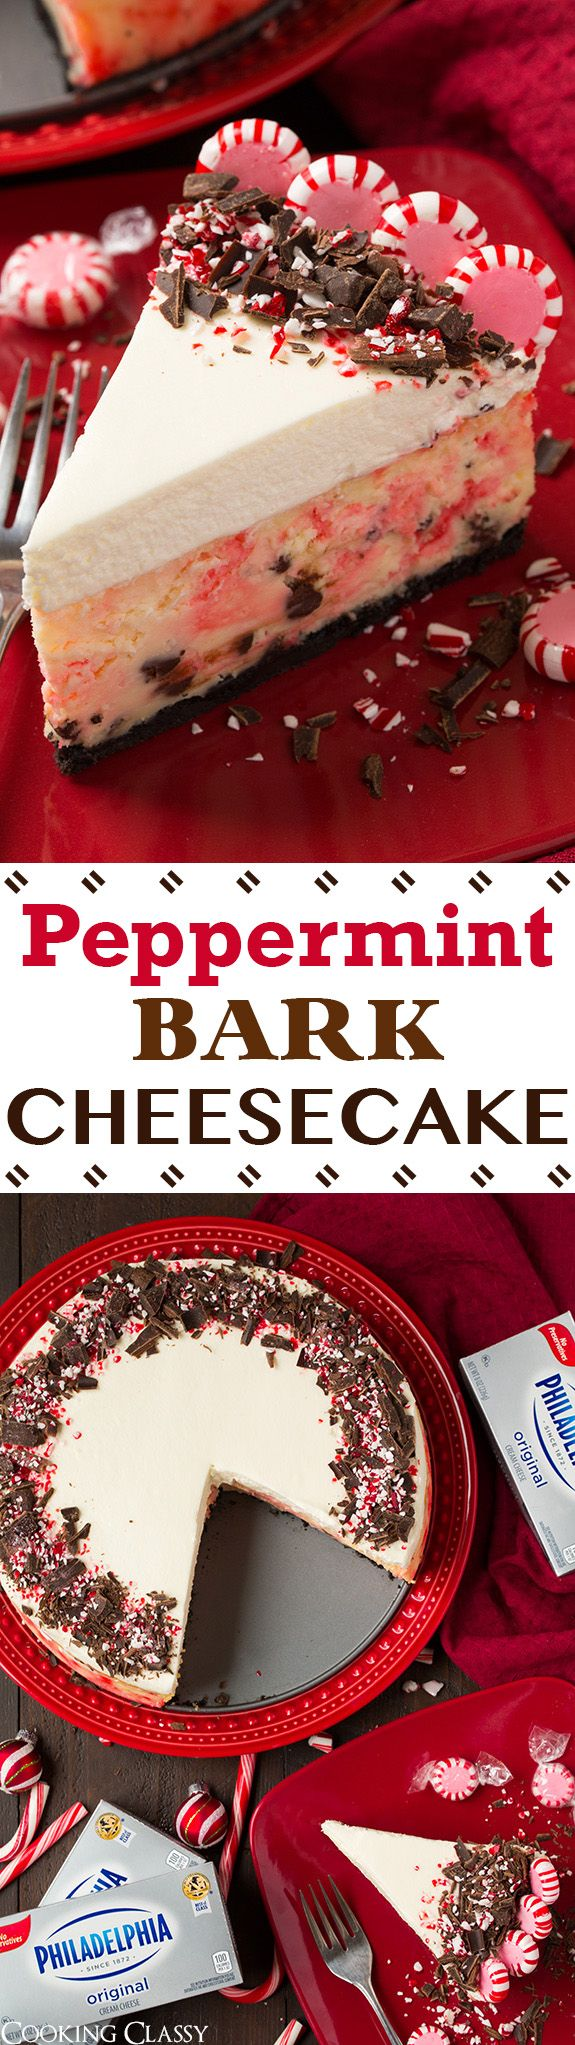 Peppermint Bark Cheesecake - ❤️ this is the PERFECT Christmas dessert! Everyone was swooning over this cheesecake! It is such a delicious combo of peppermint bark meets cheesecake. You'll want to make it every year!